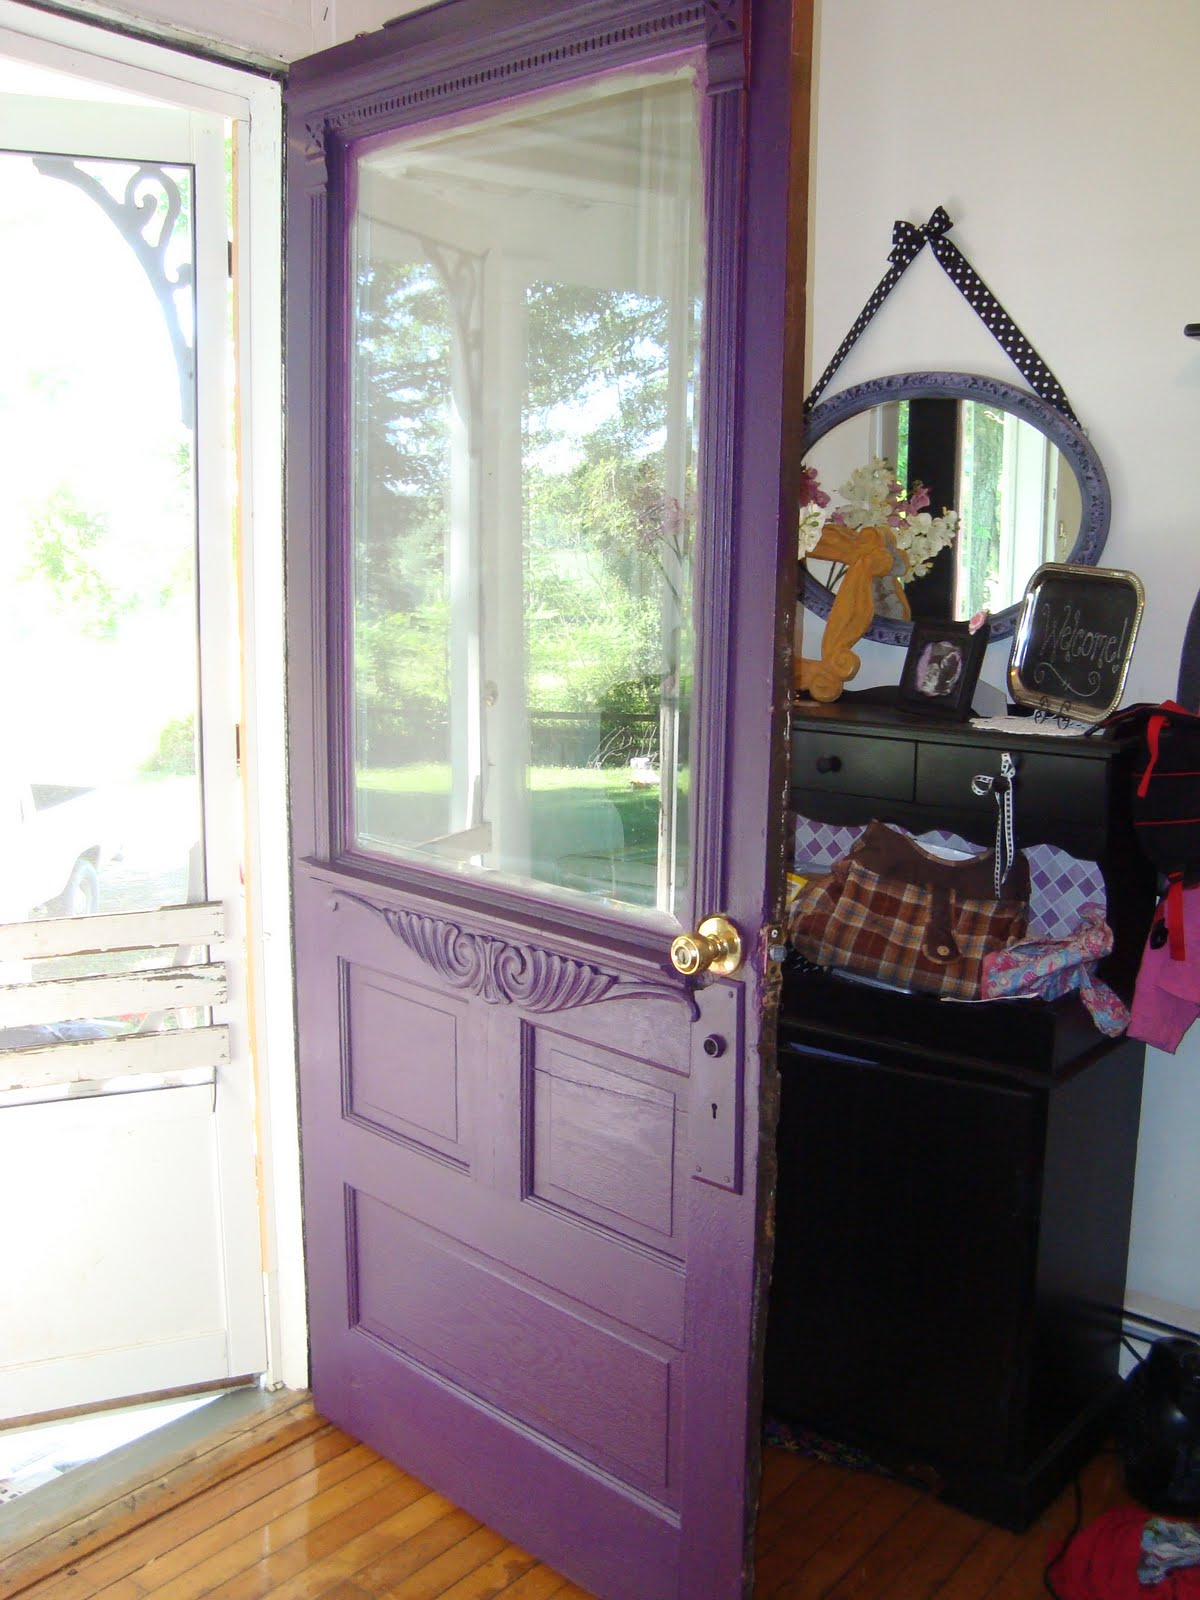 1600 #926232 Tales From The Farmhouse: Purple Front Door wallpaper Purple Front Doors 47051200